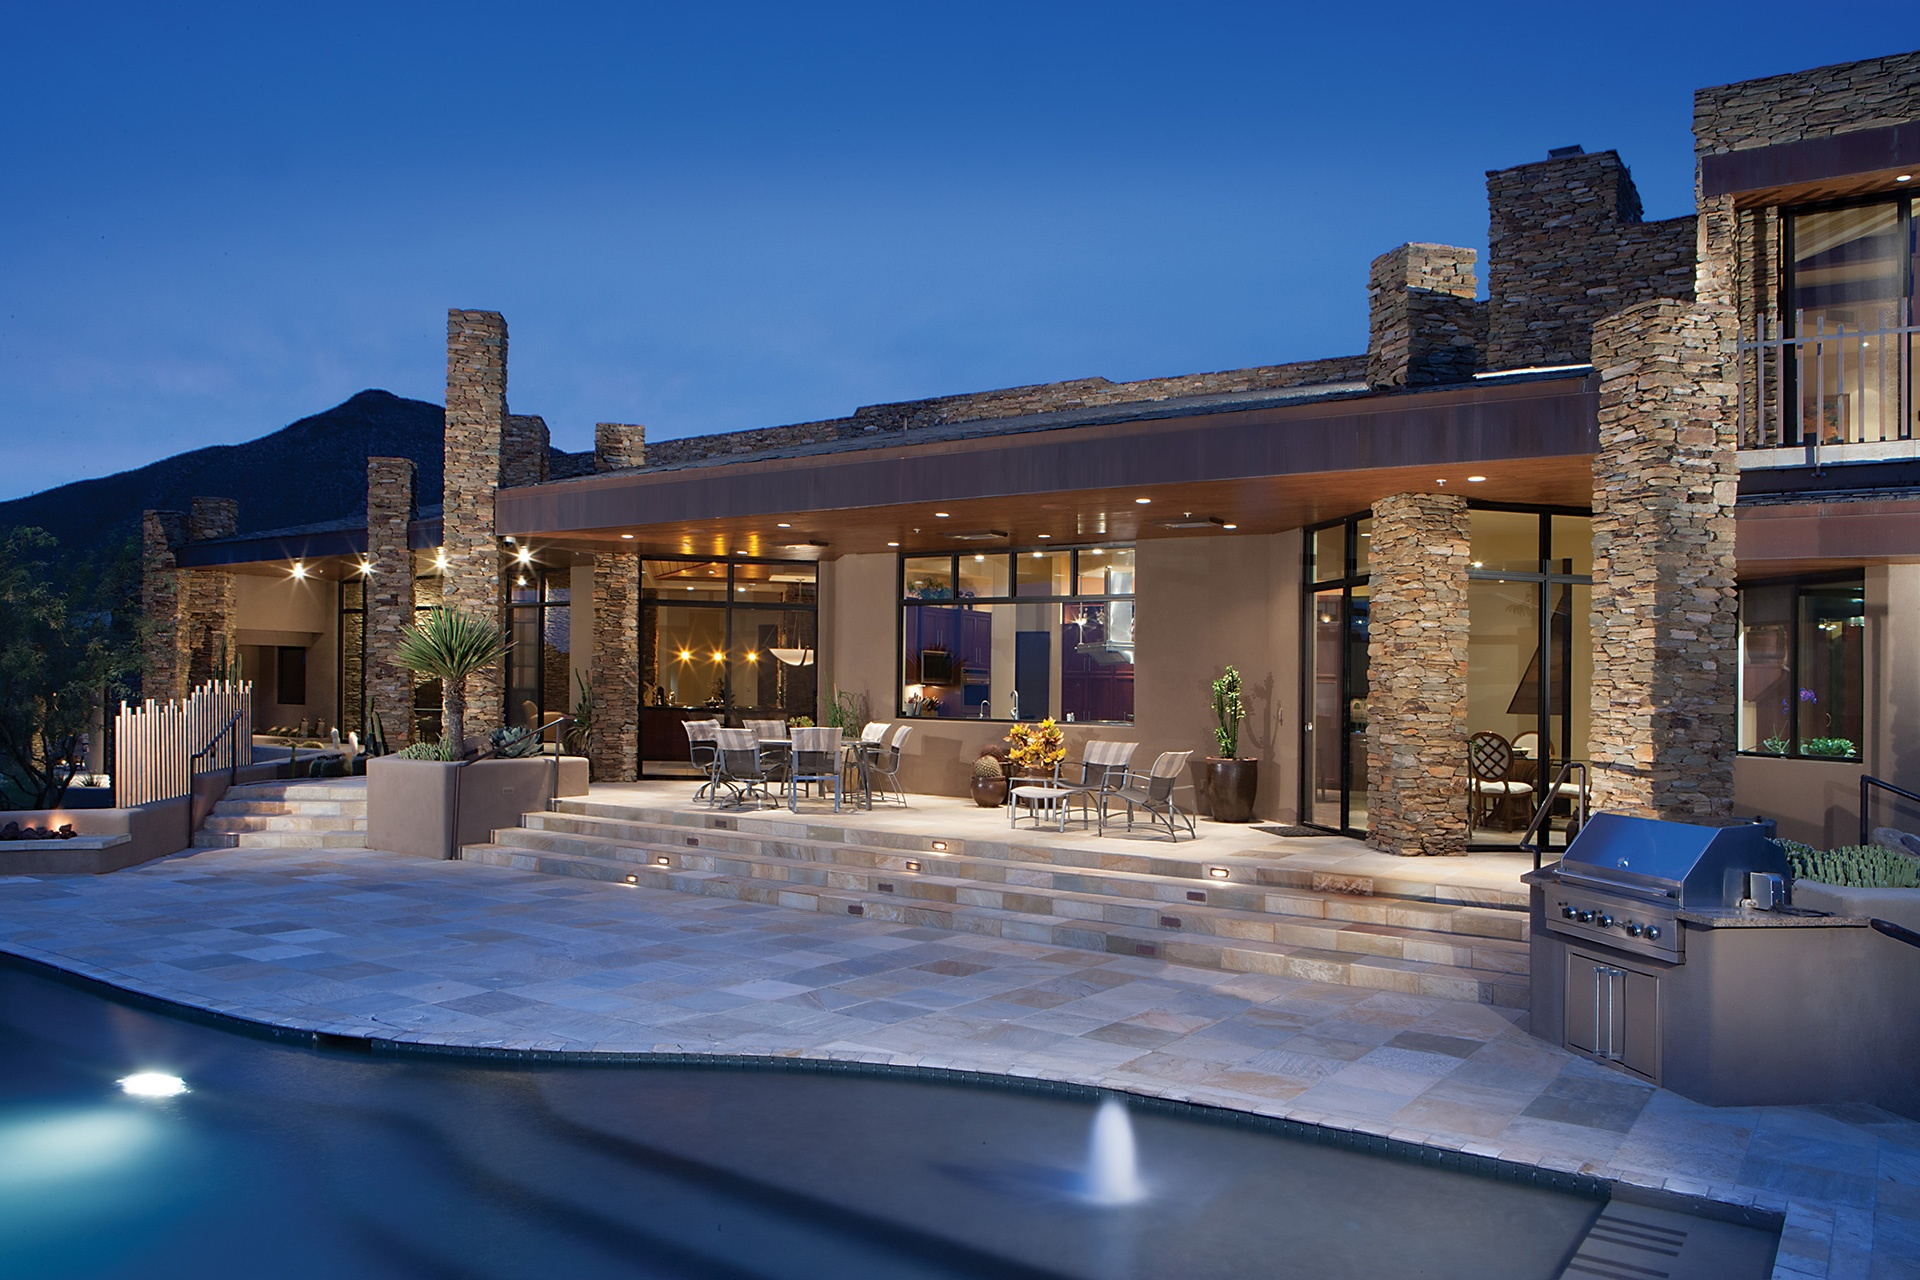 At one with its magnificent setting in the Sonoran Desert, this contemporary retreat features a covered dining terrace with mountain, city light, and sunset views.